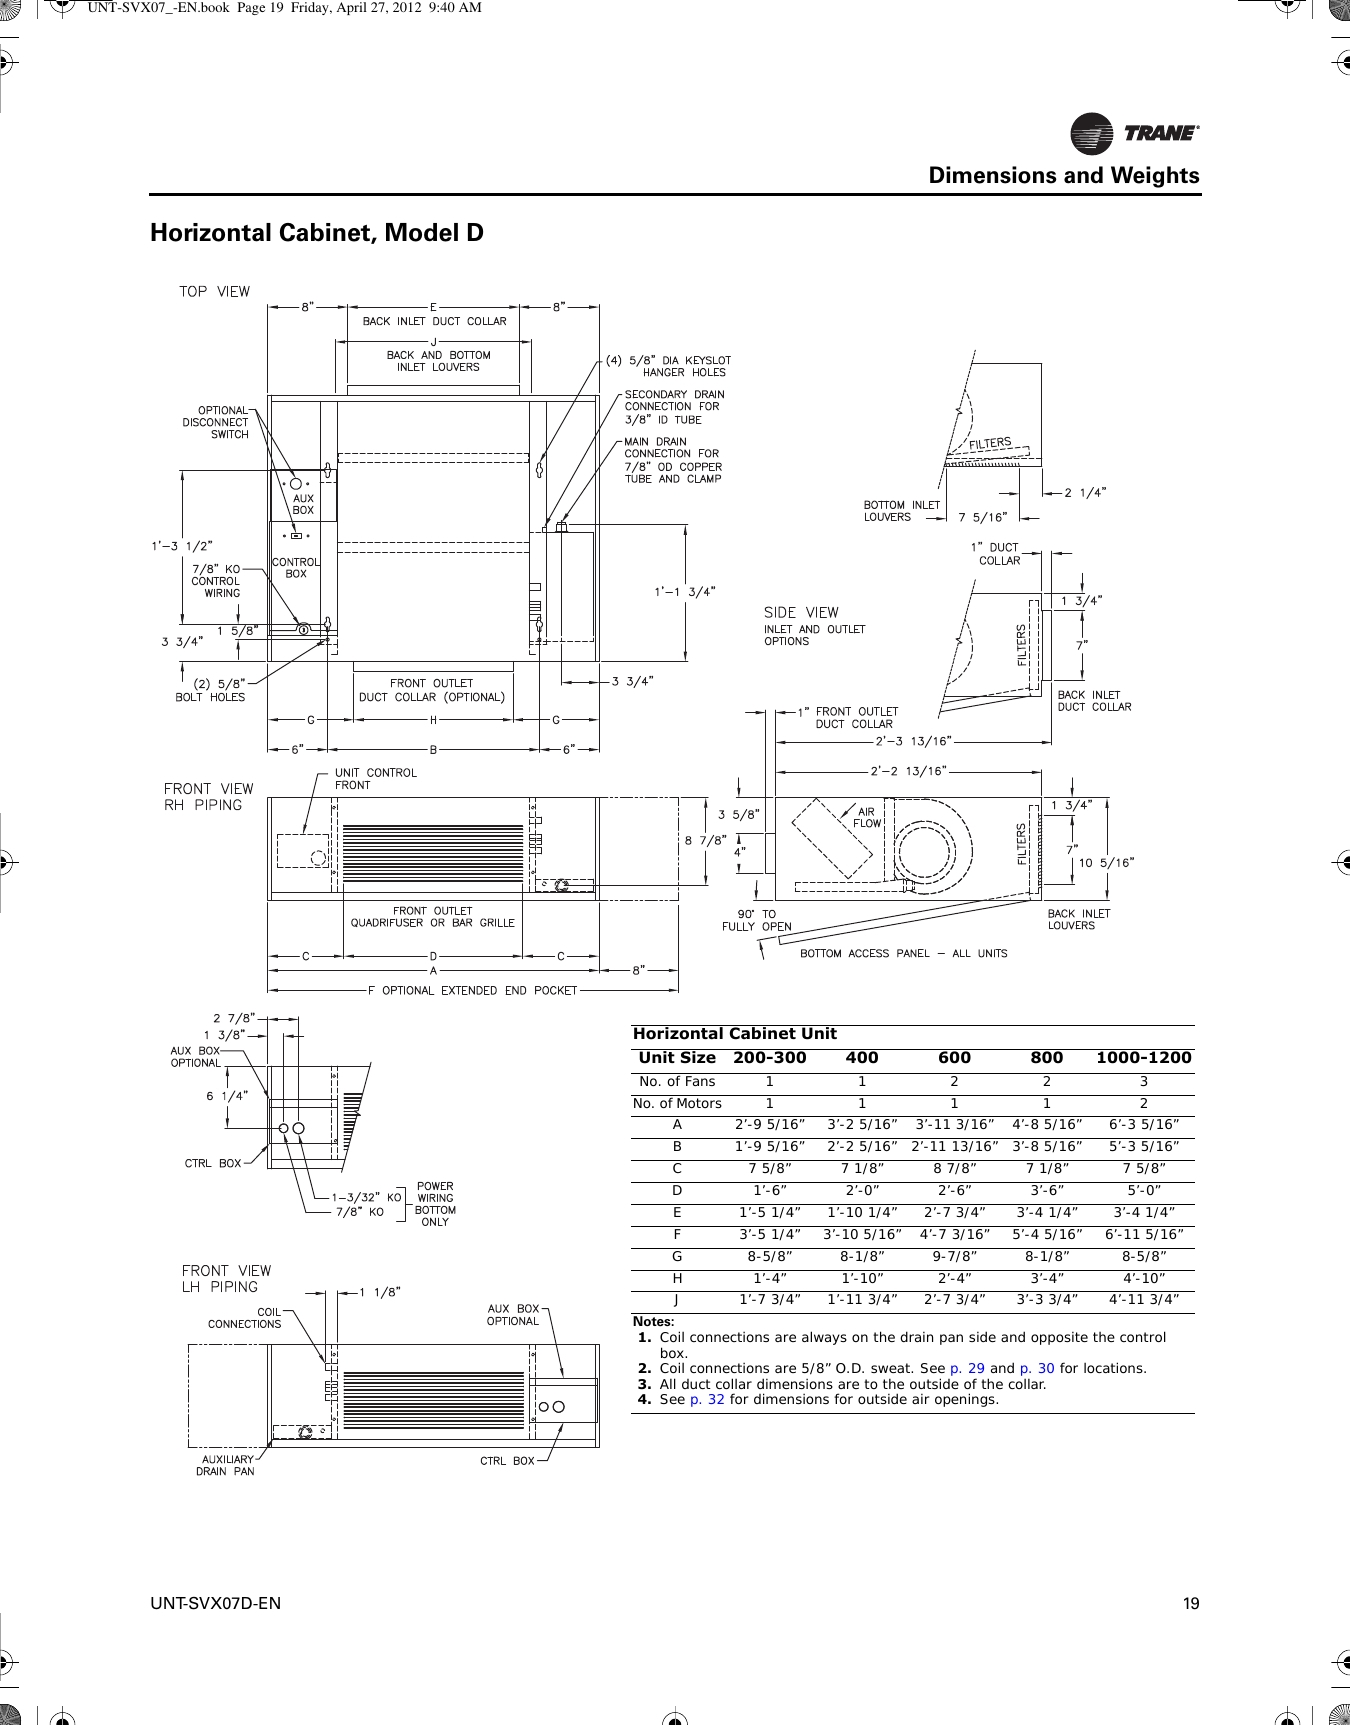 wiring diagram for cm hoist